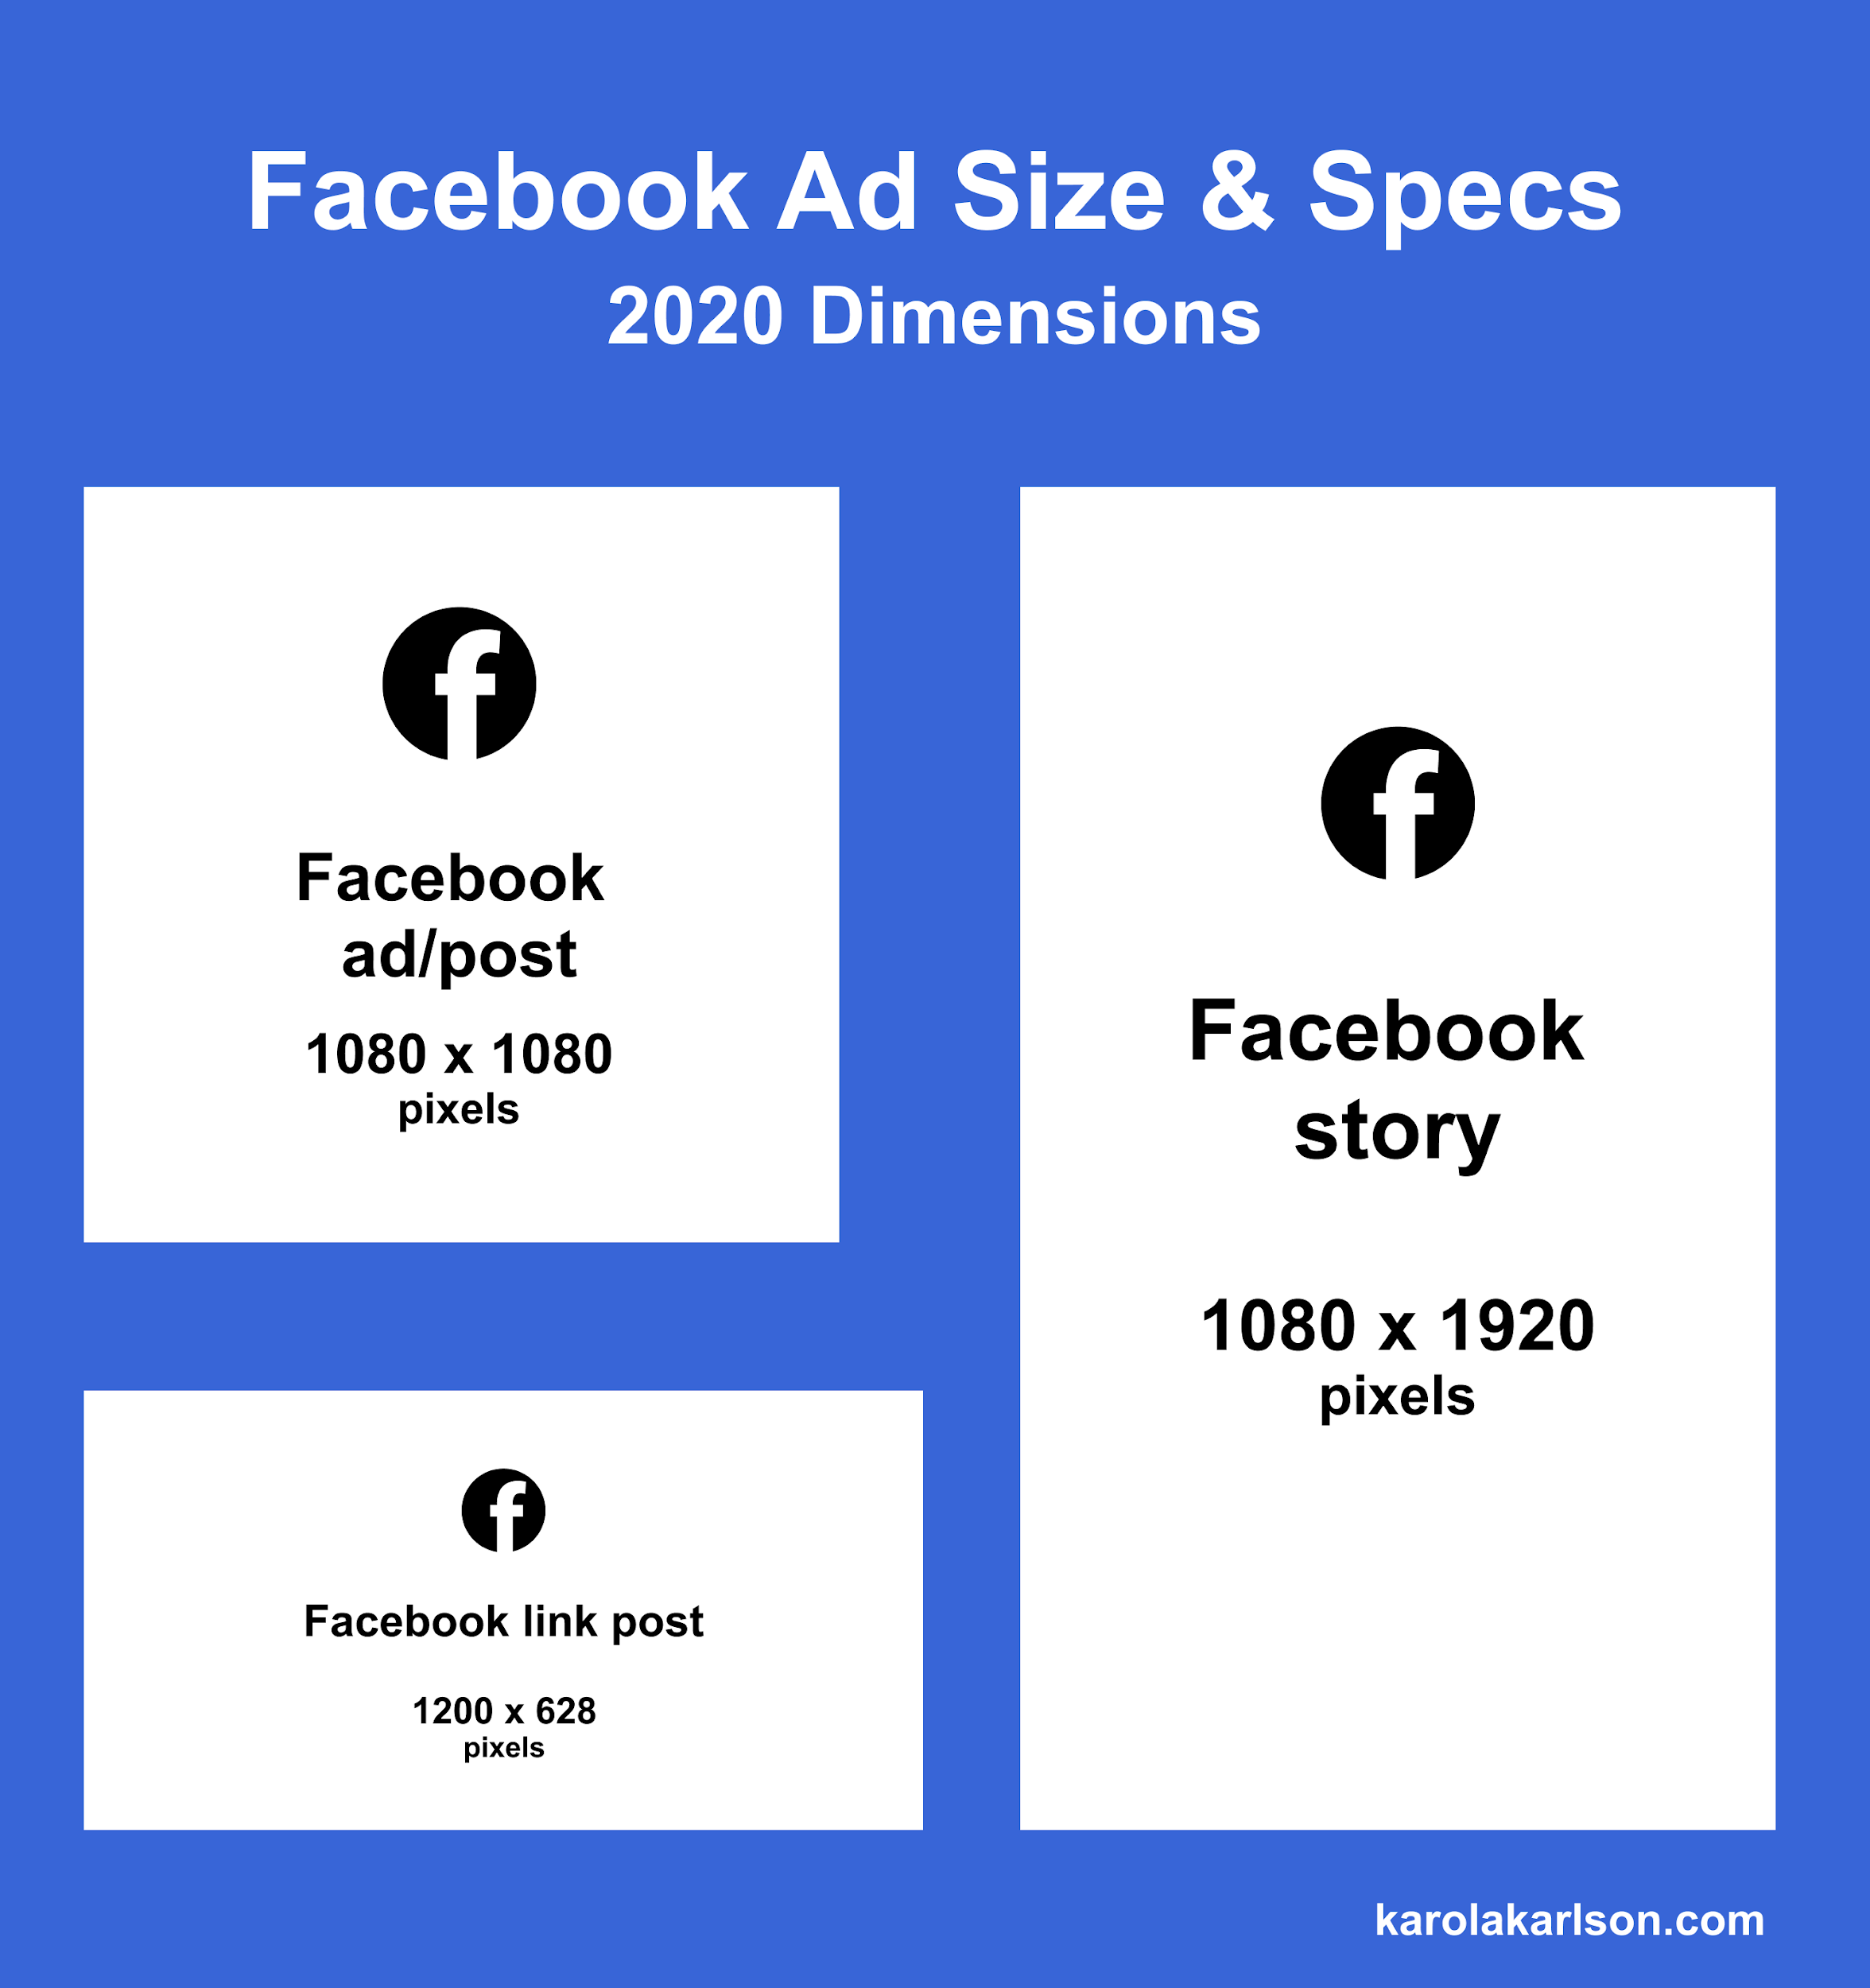 facebook ad size and specs in 2020